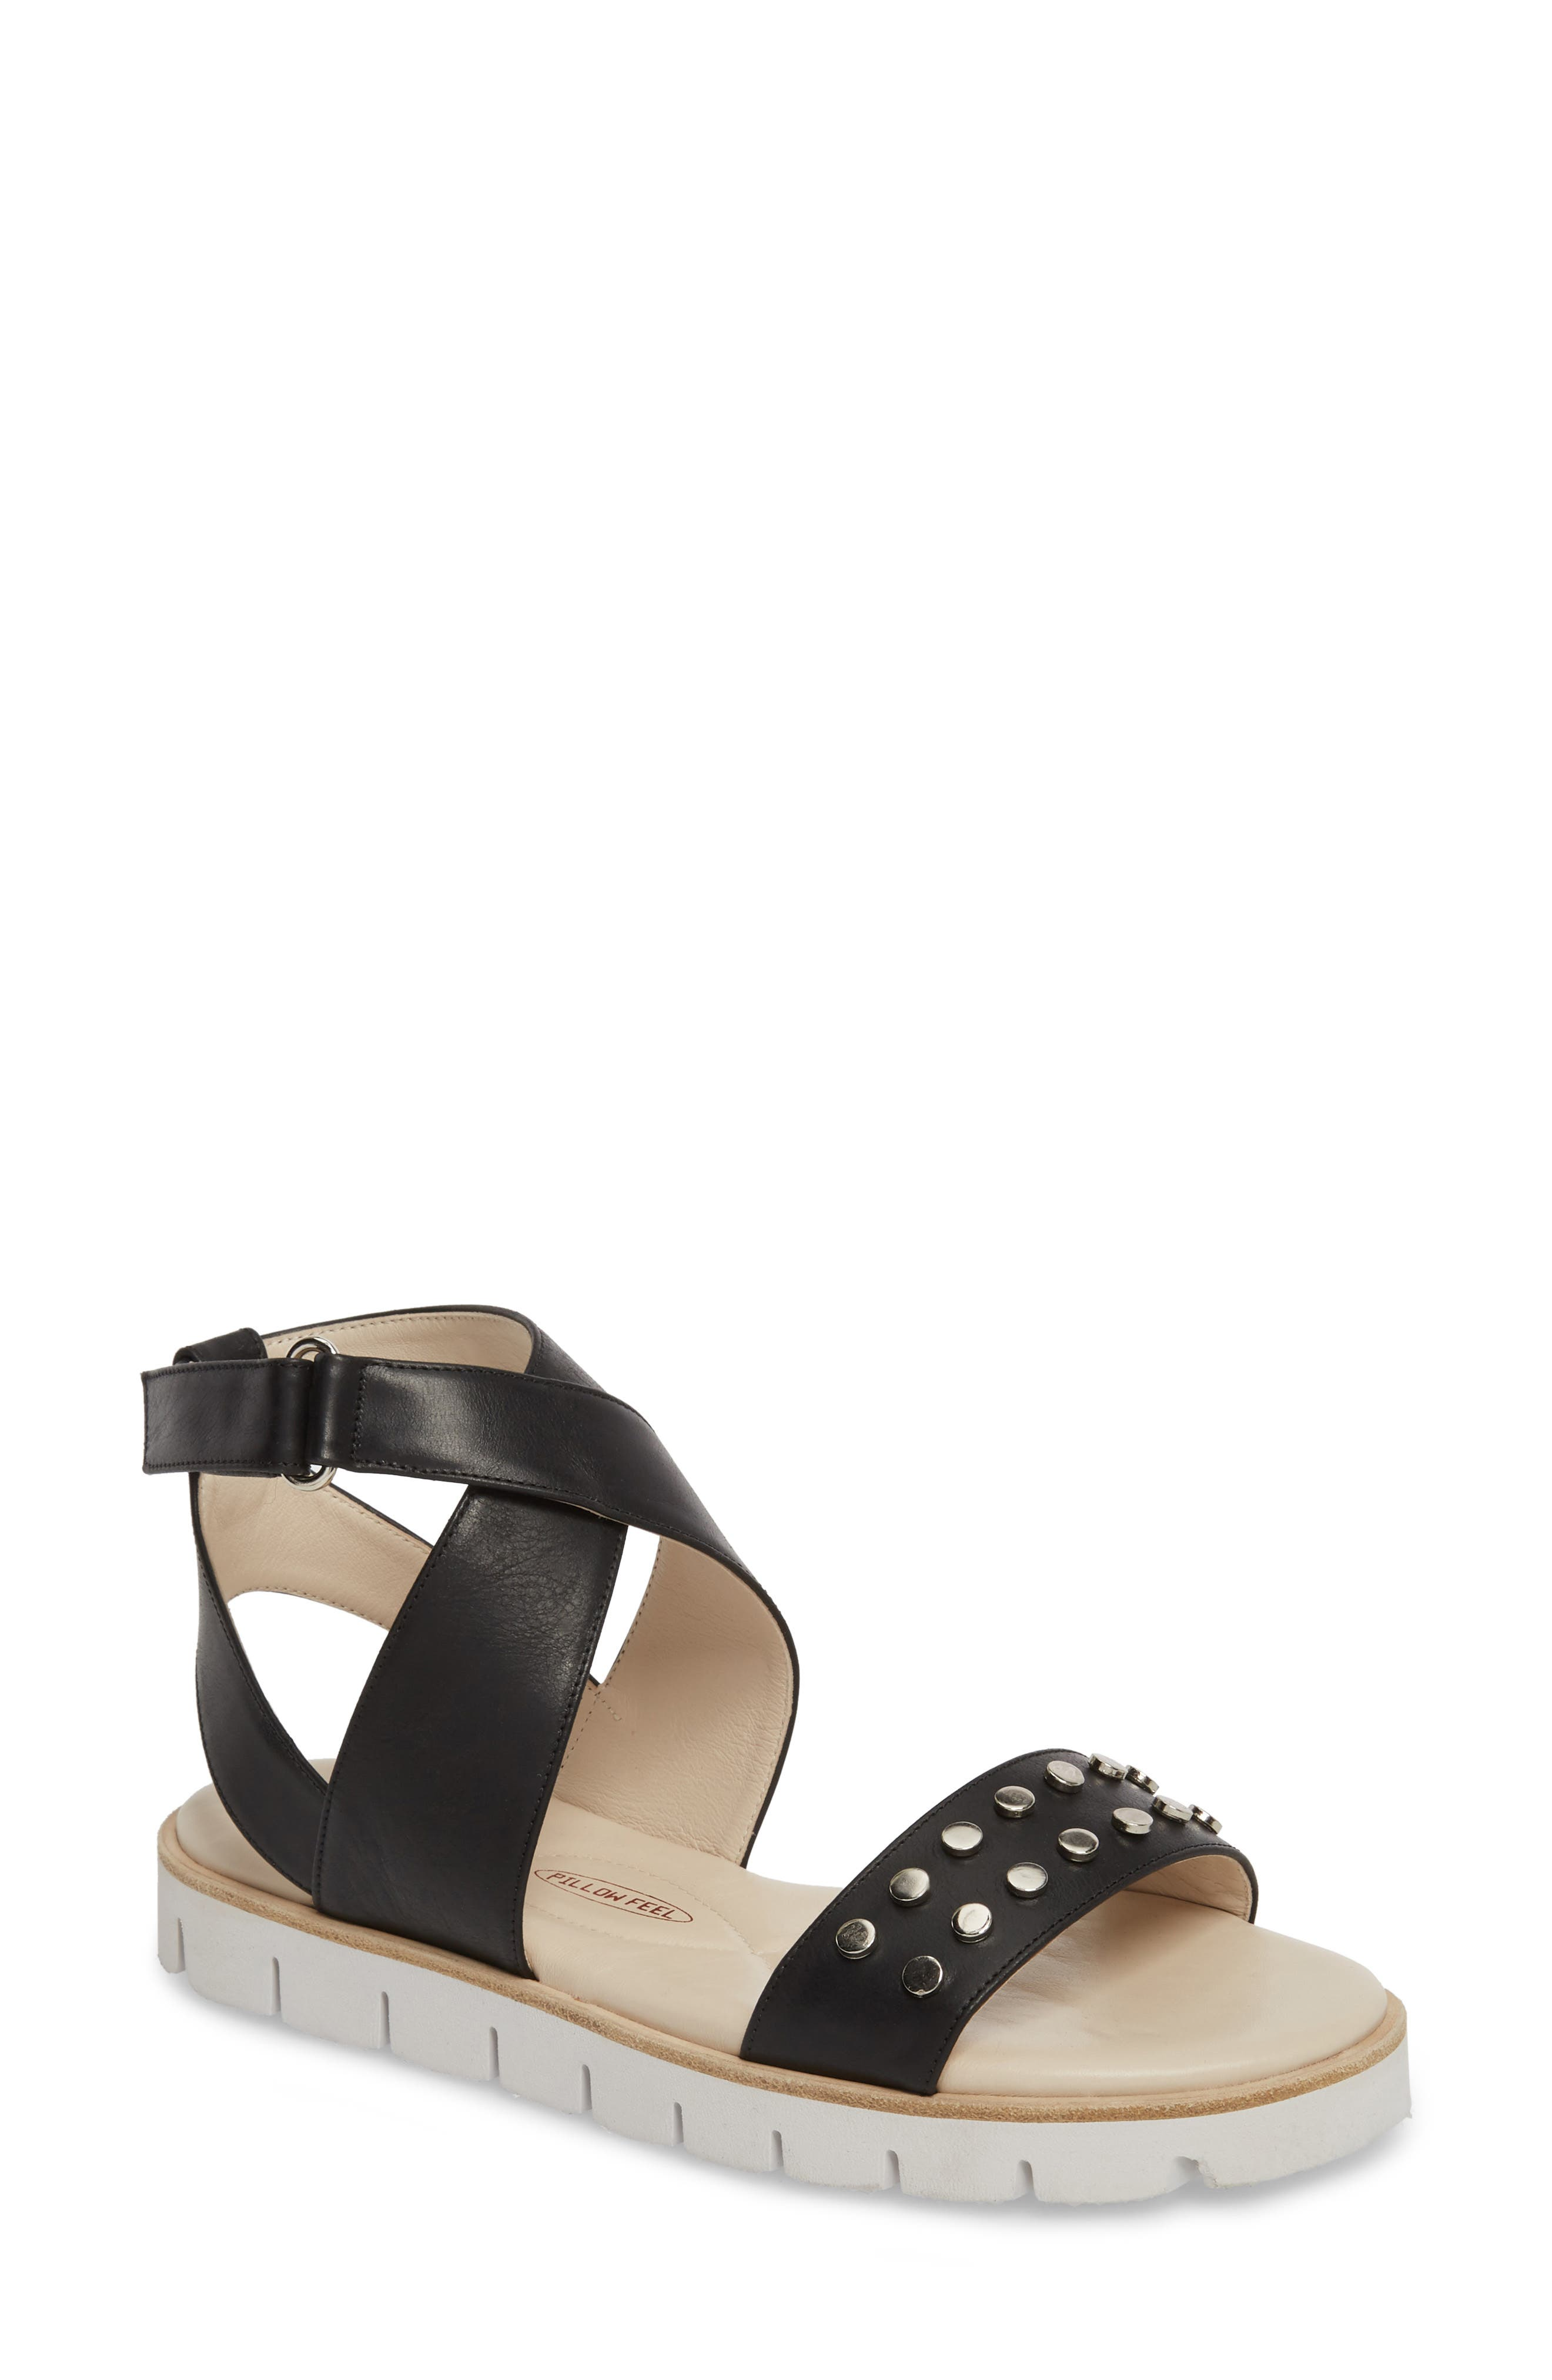 AMALFI BY RANGONI Barlume Sandal in Black Leather